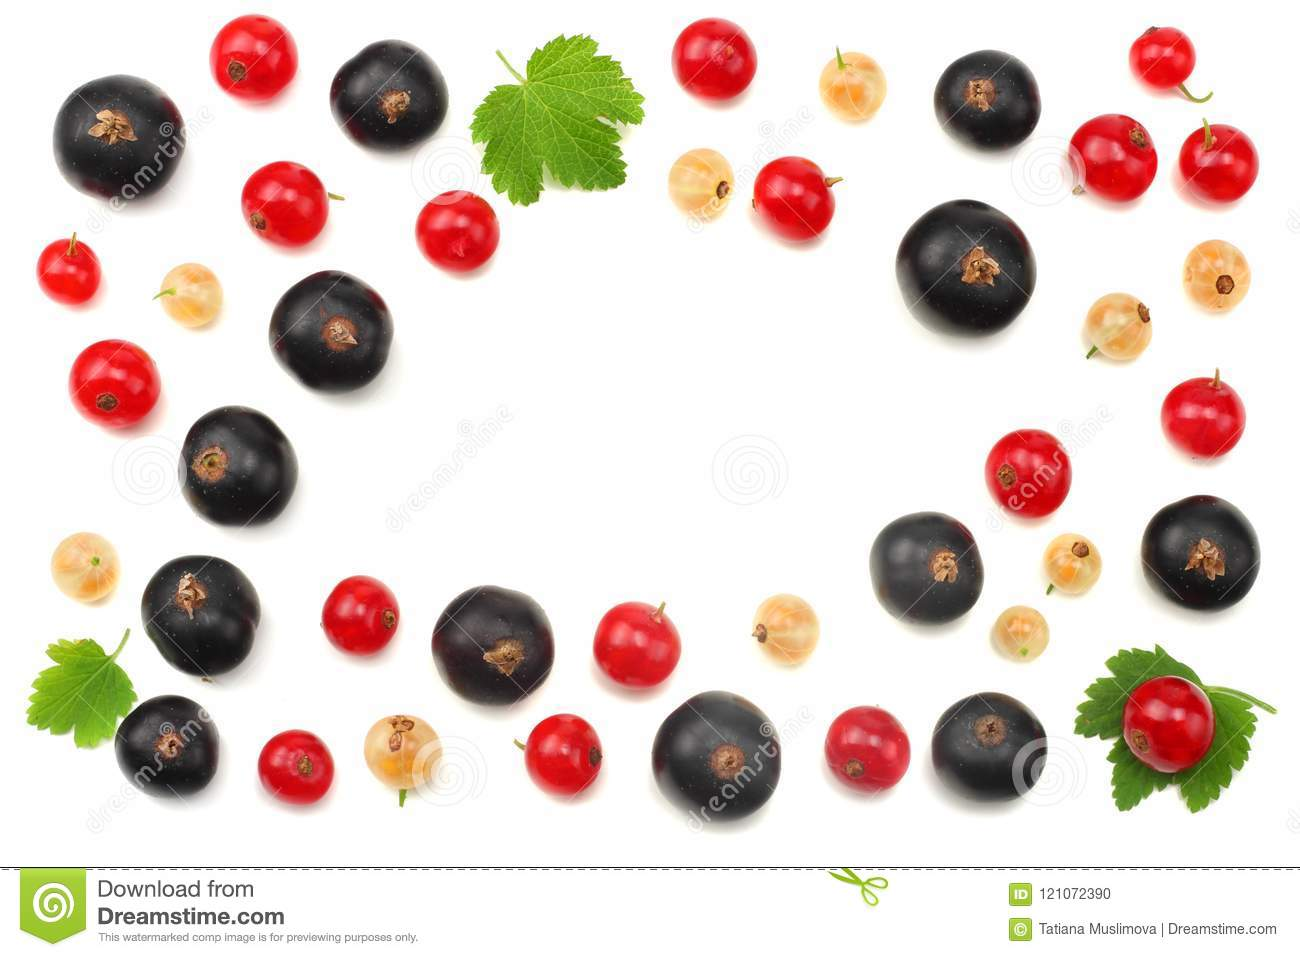 mix of red currant and black currant with green leaf isolated on a white background. healthy food. top view